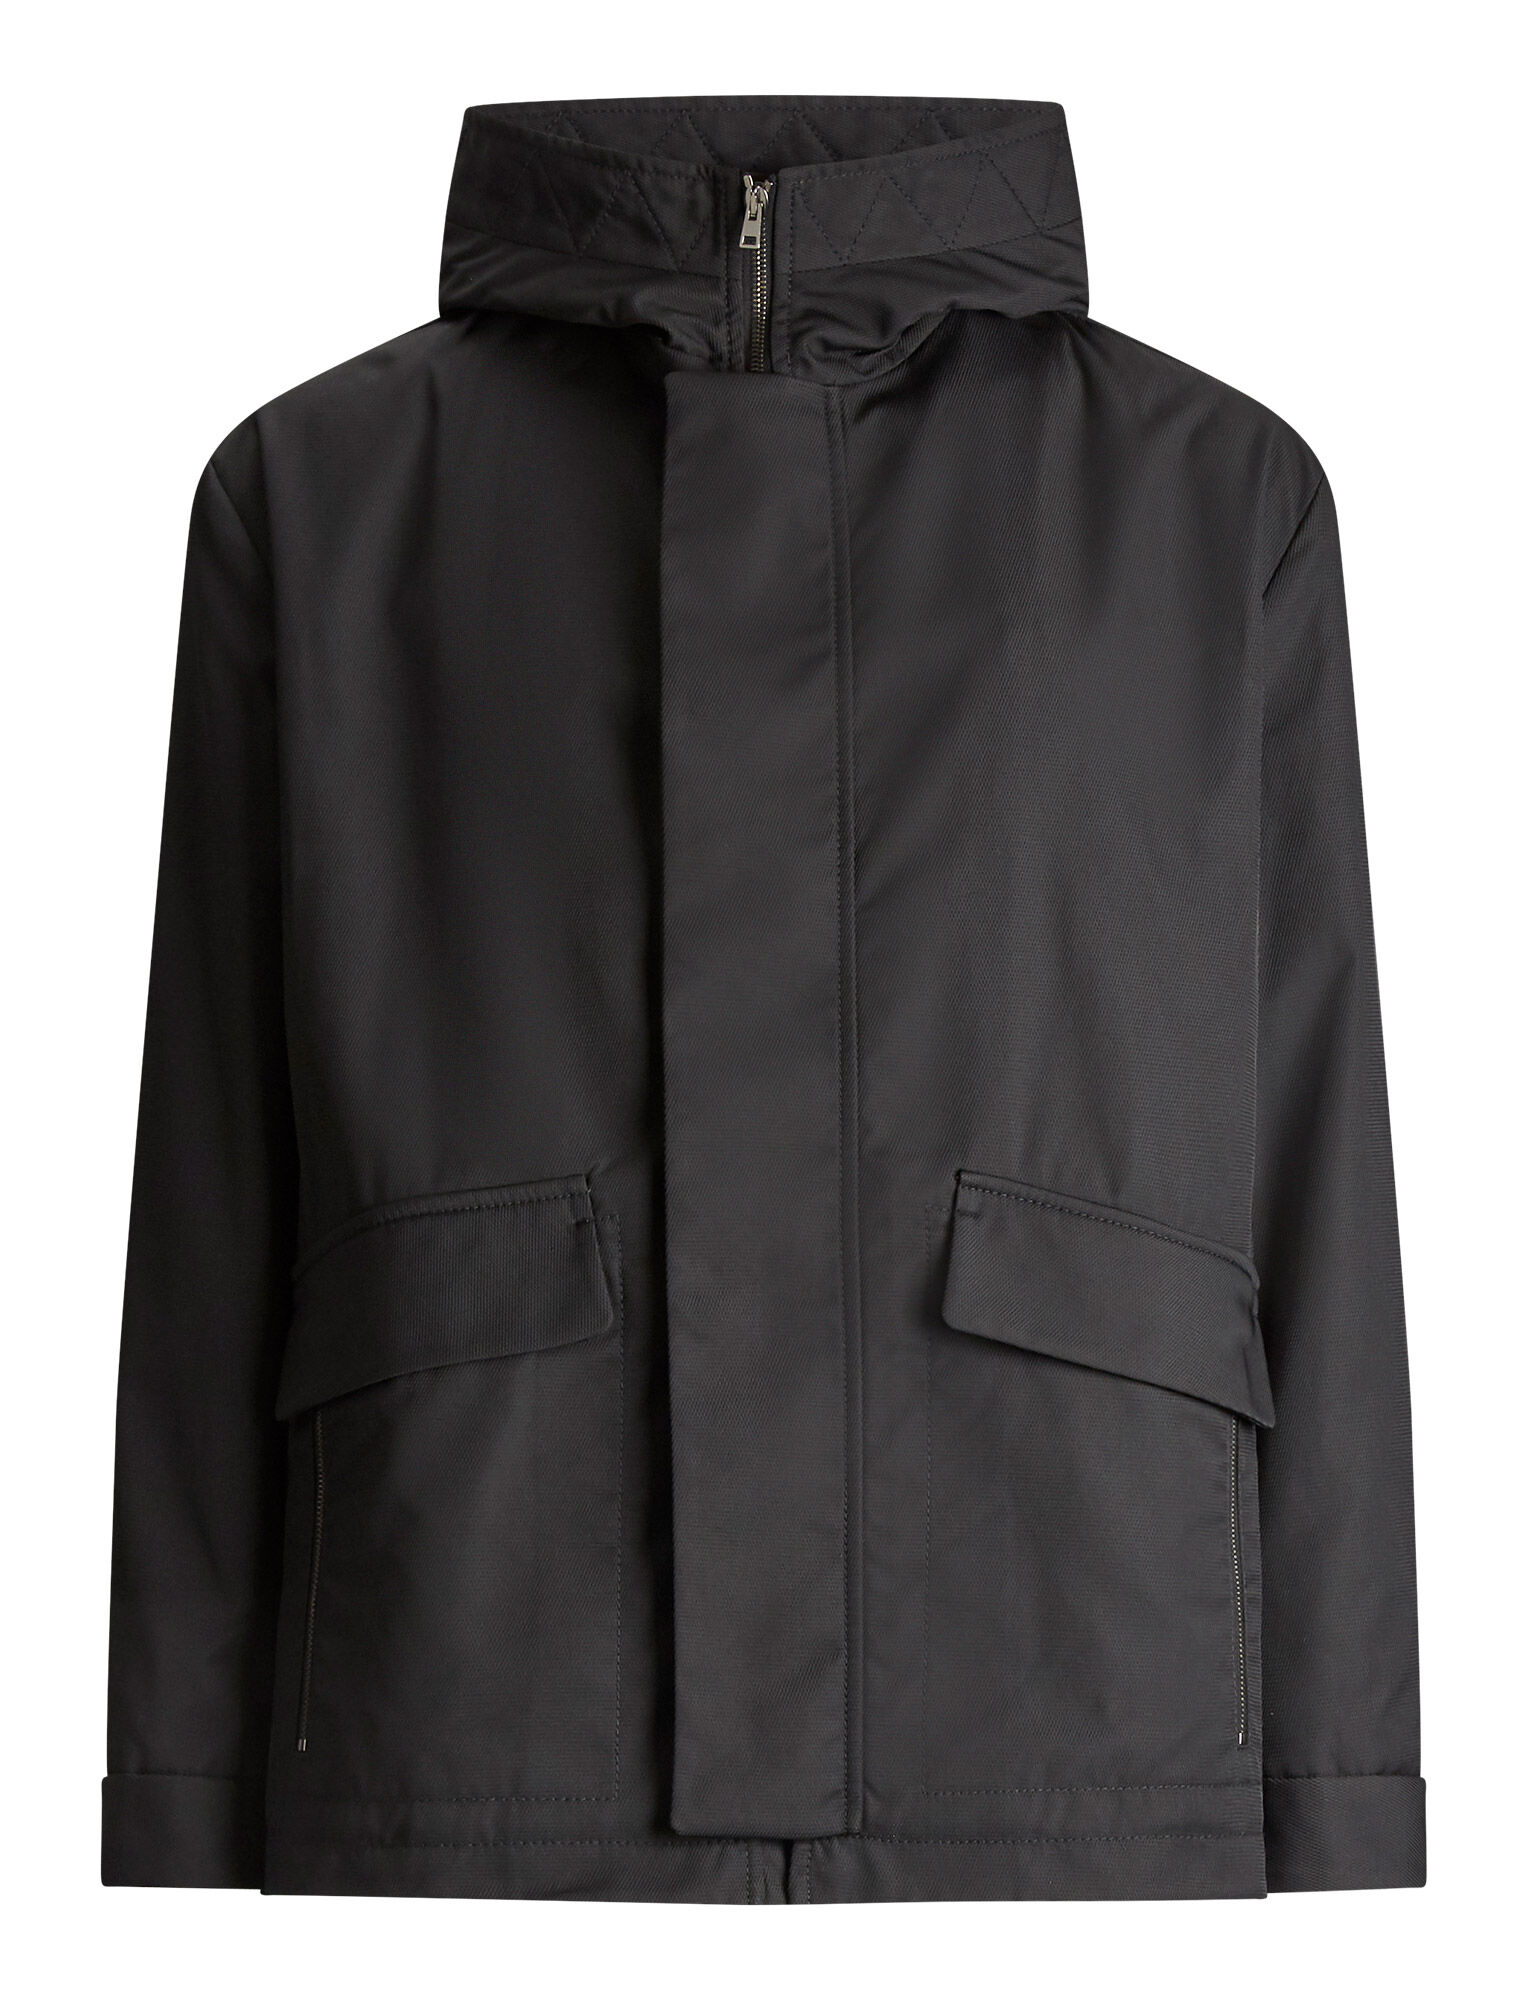 Joseph, Aspin Textured Nylon Coat, in BLACK